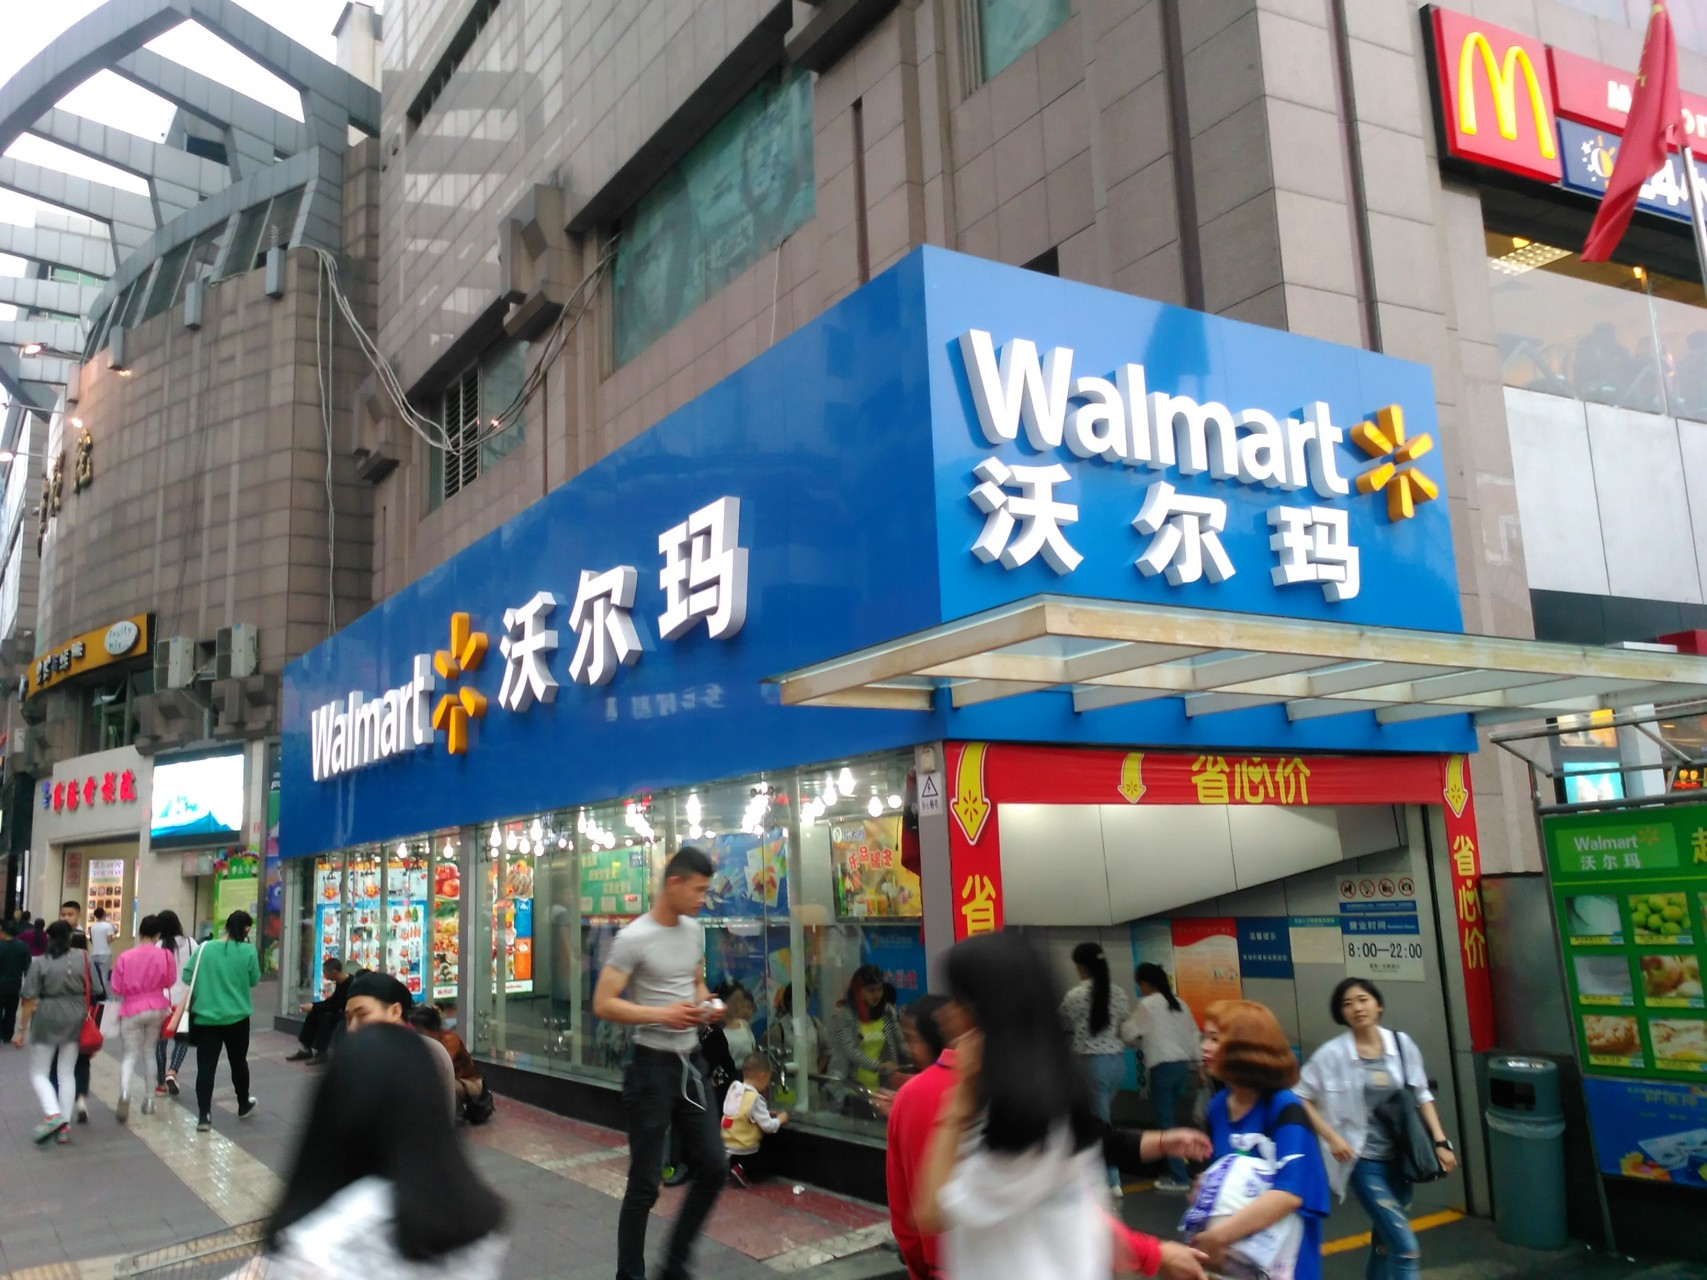 Walmart ditches alipay in favor of wechat in western china technode malvernweather Gallery